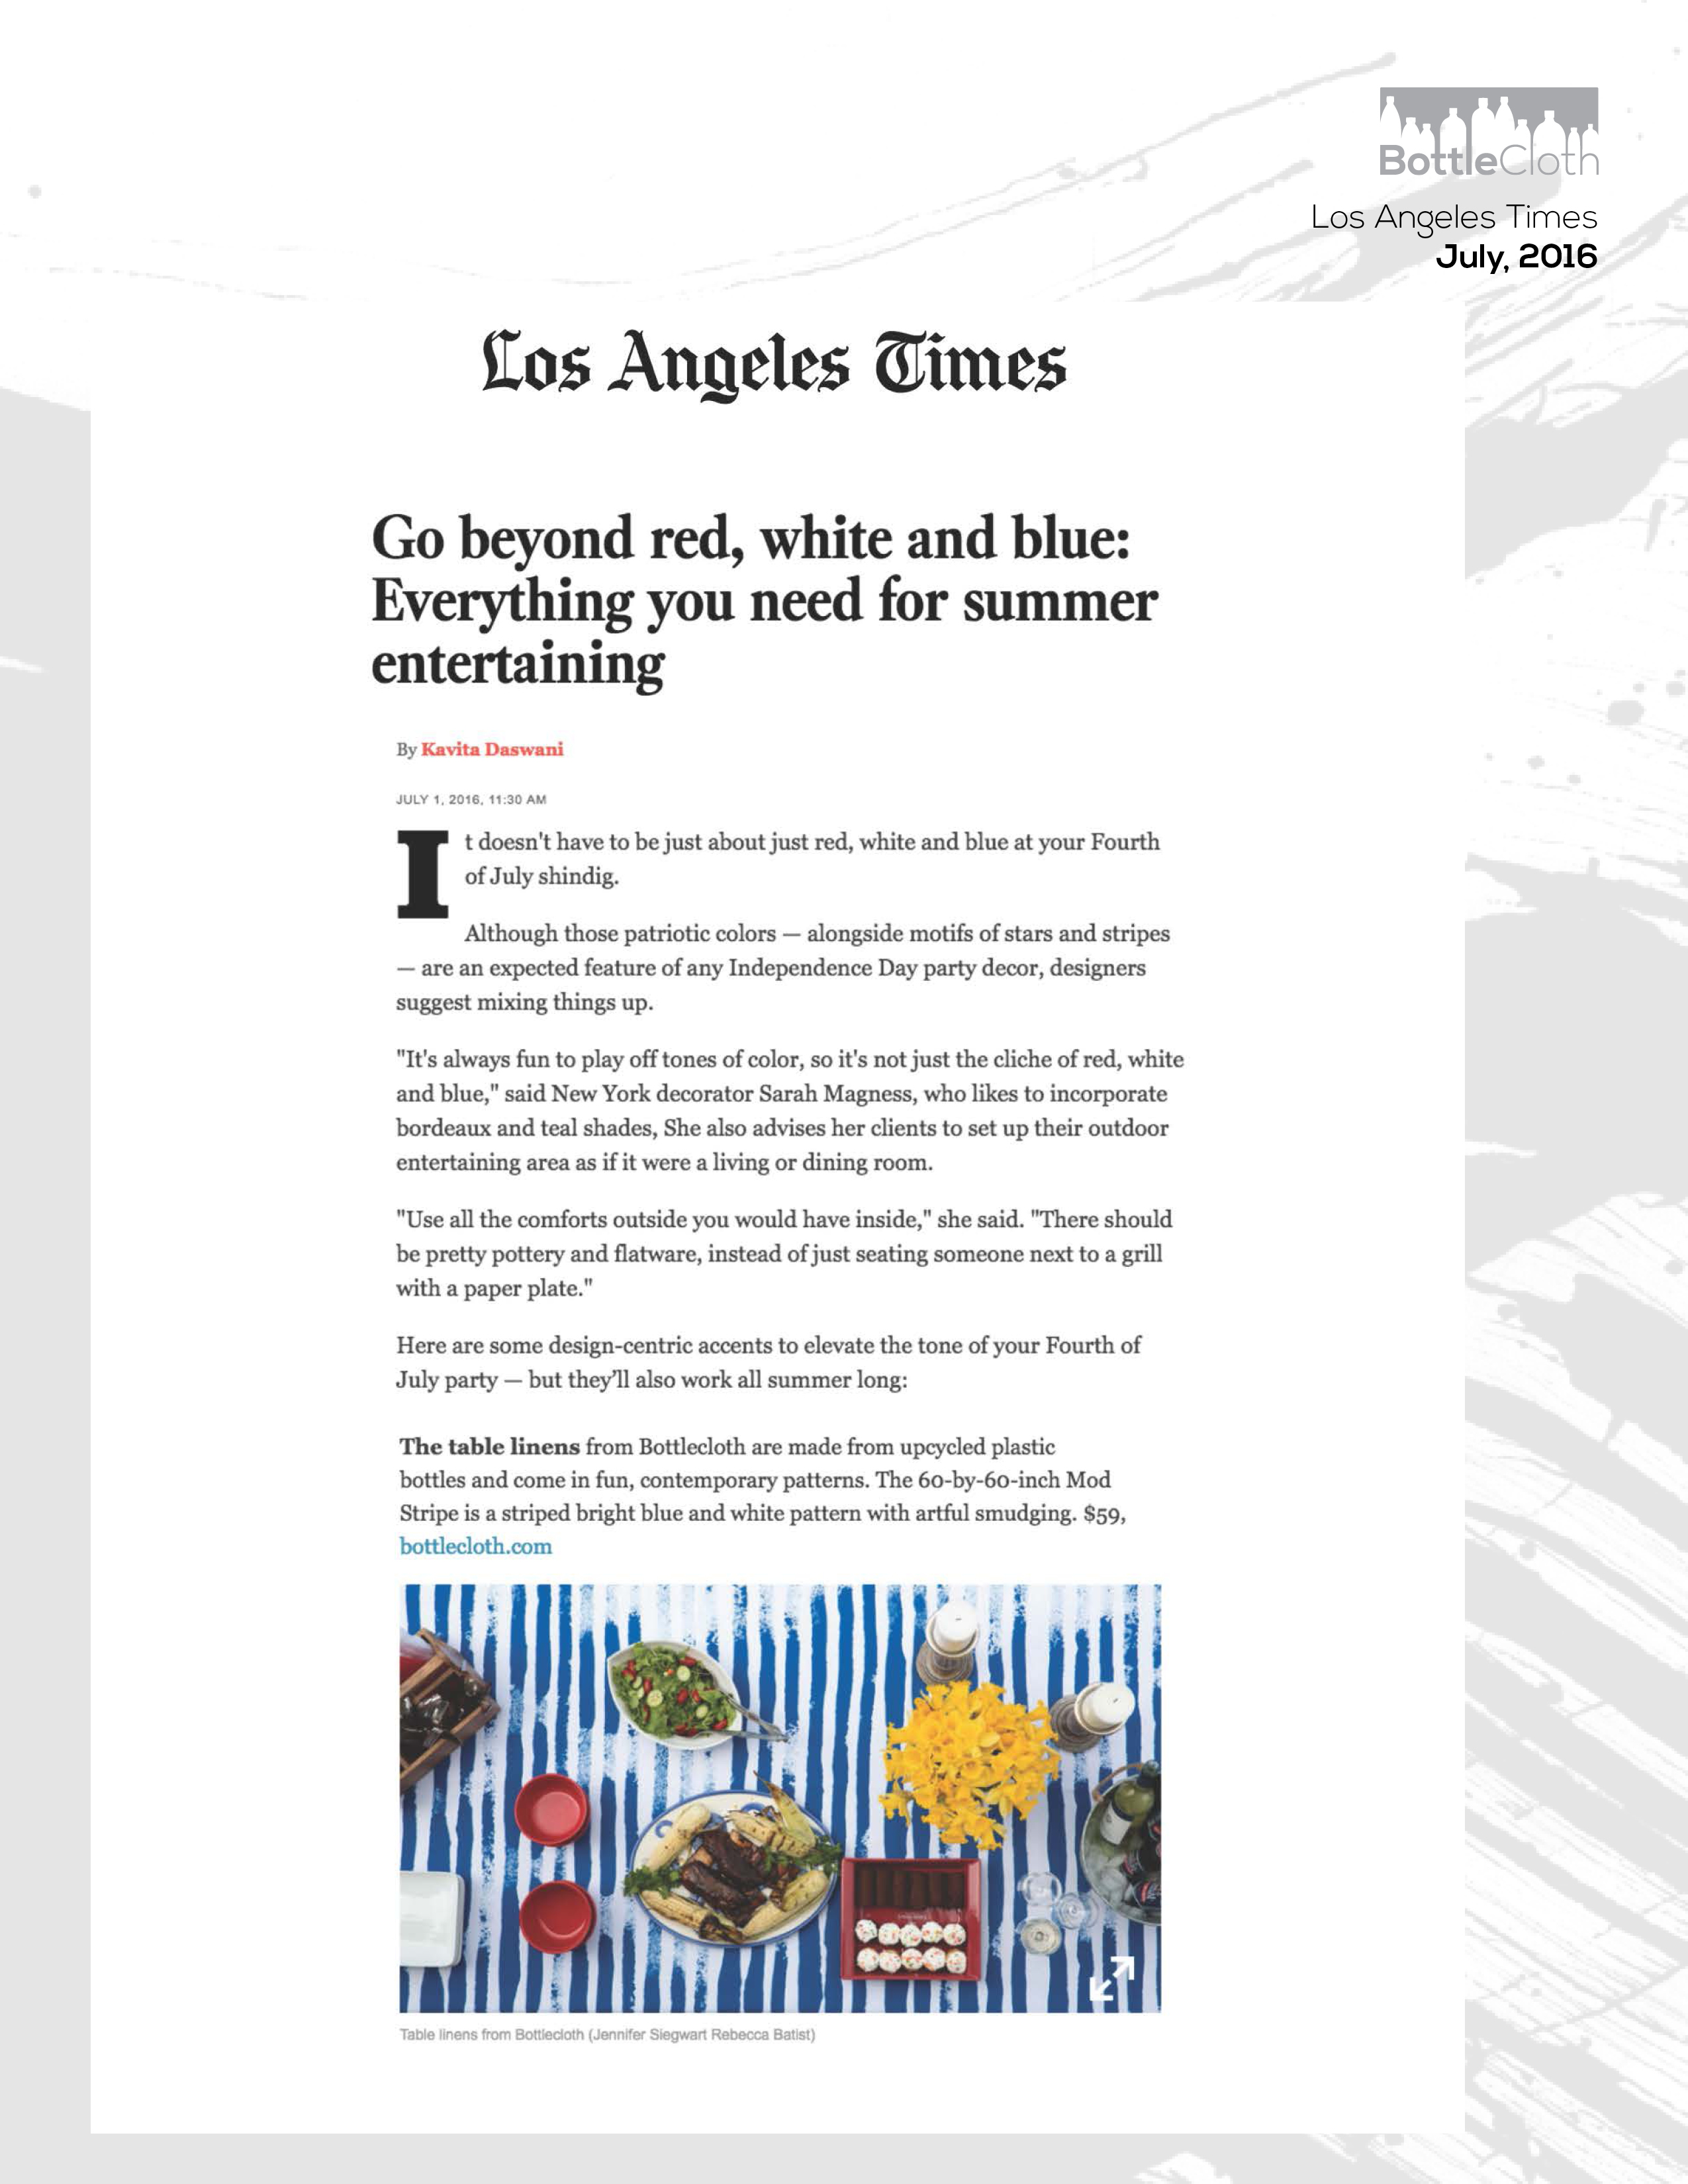 BottleCloth Press - LA Times